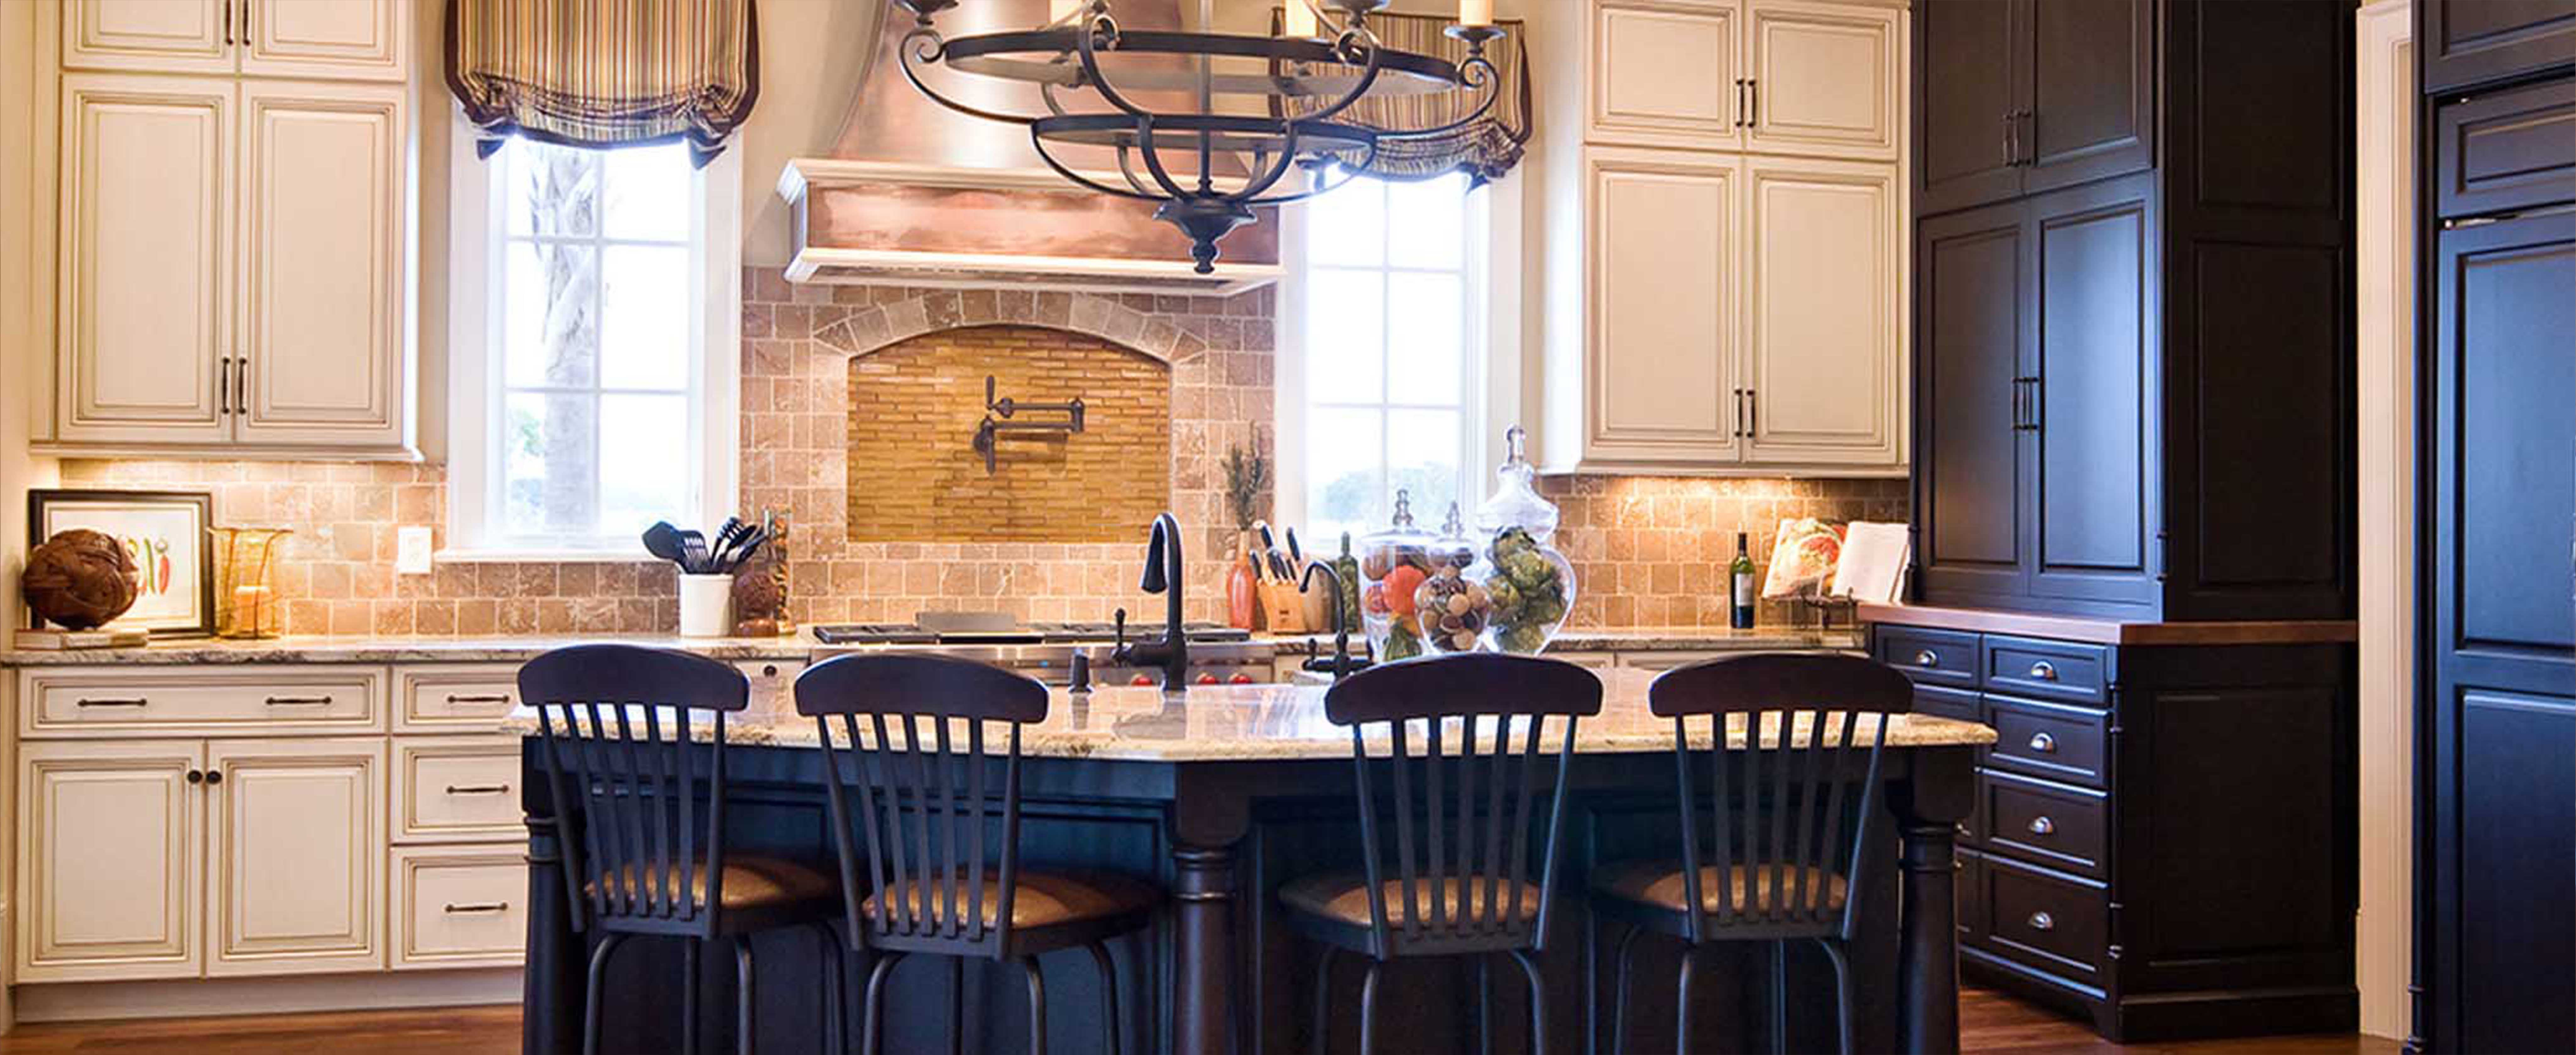 Renovations Home Center Is Your One Stop Shop For All Of Your Custom  Cabinet, Flooring And Countertop Needs. Our Licensed Kitchen And Bath Design  ...